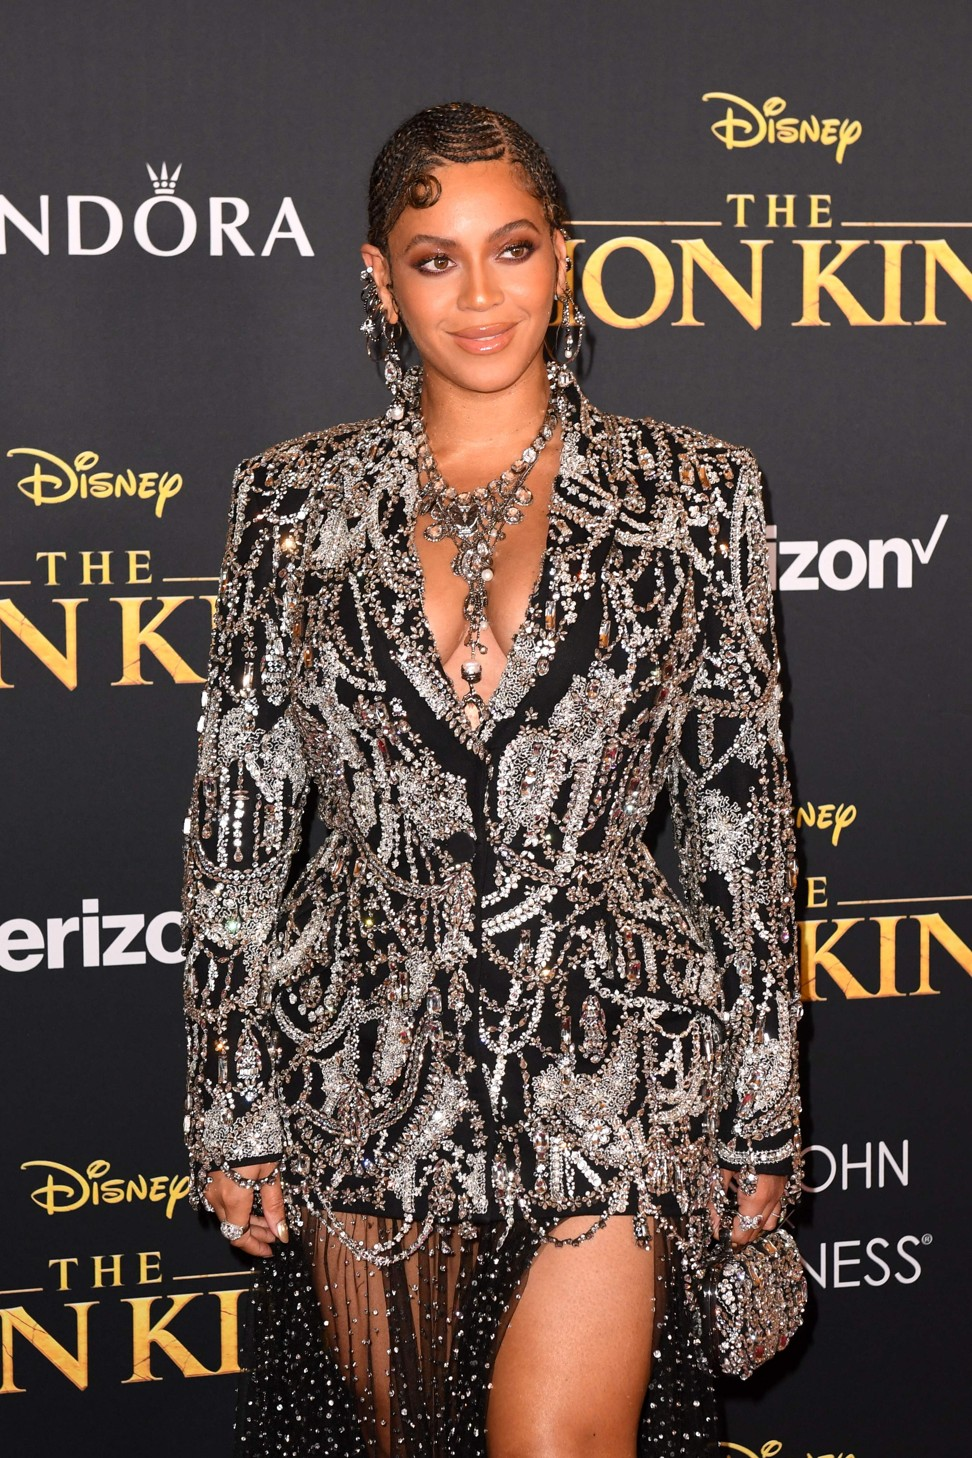 Beyoncé and Blue Ivy dazzle at Lion King premiere in matching Alexander McQueen outfits